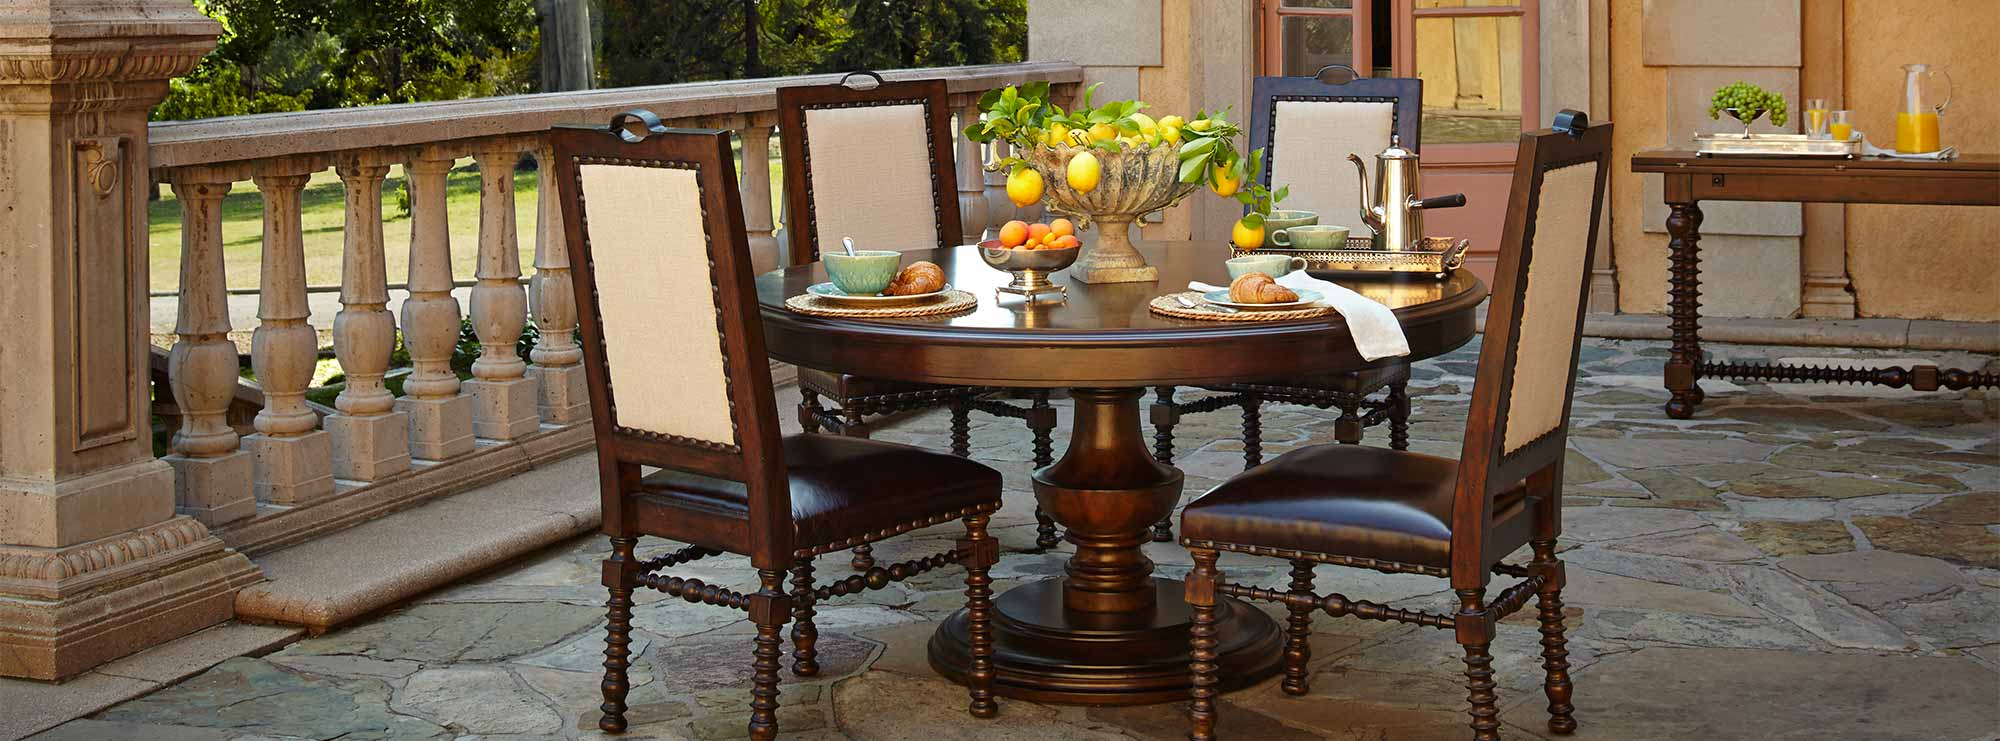 Bella Cera round dining table and chairs